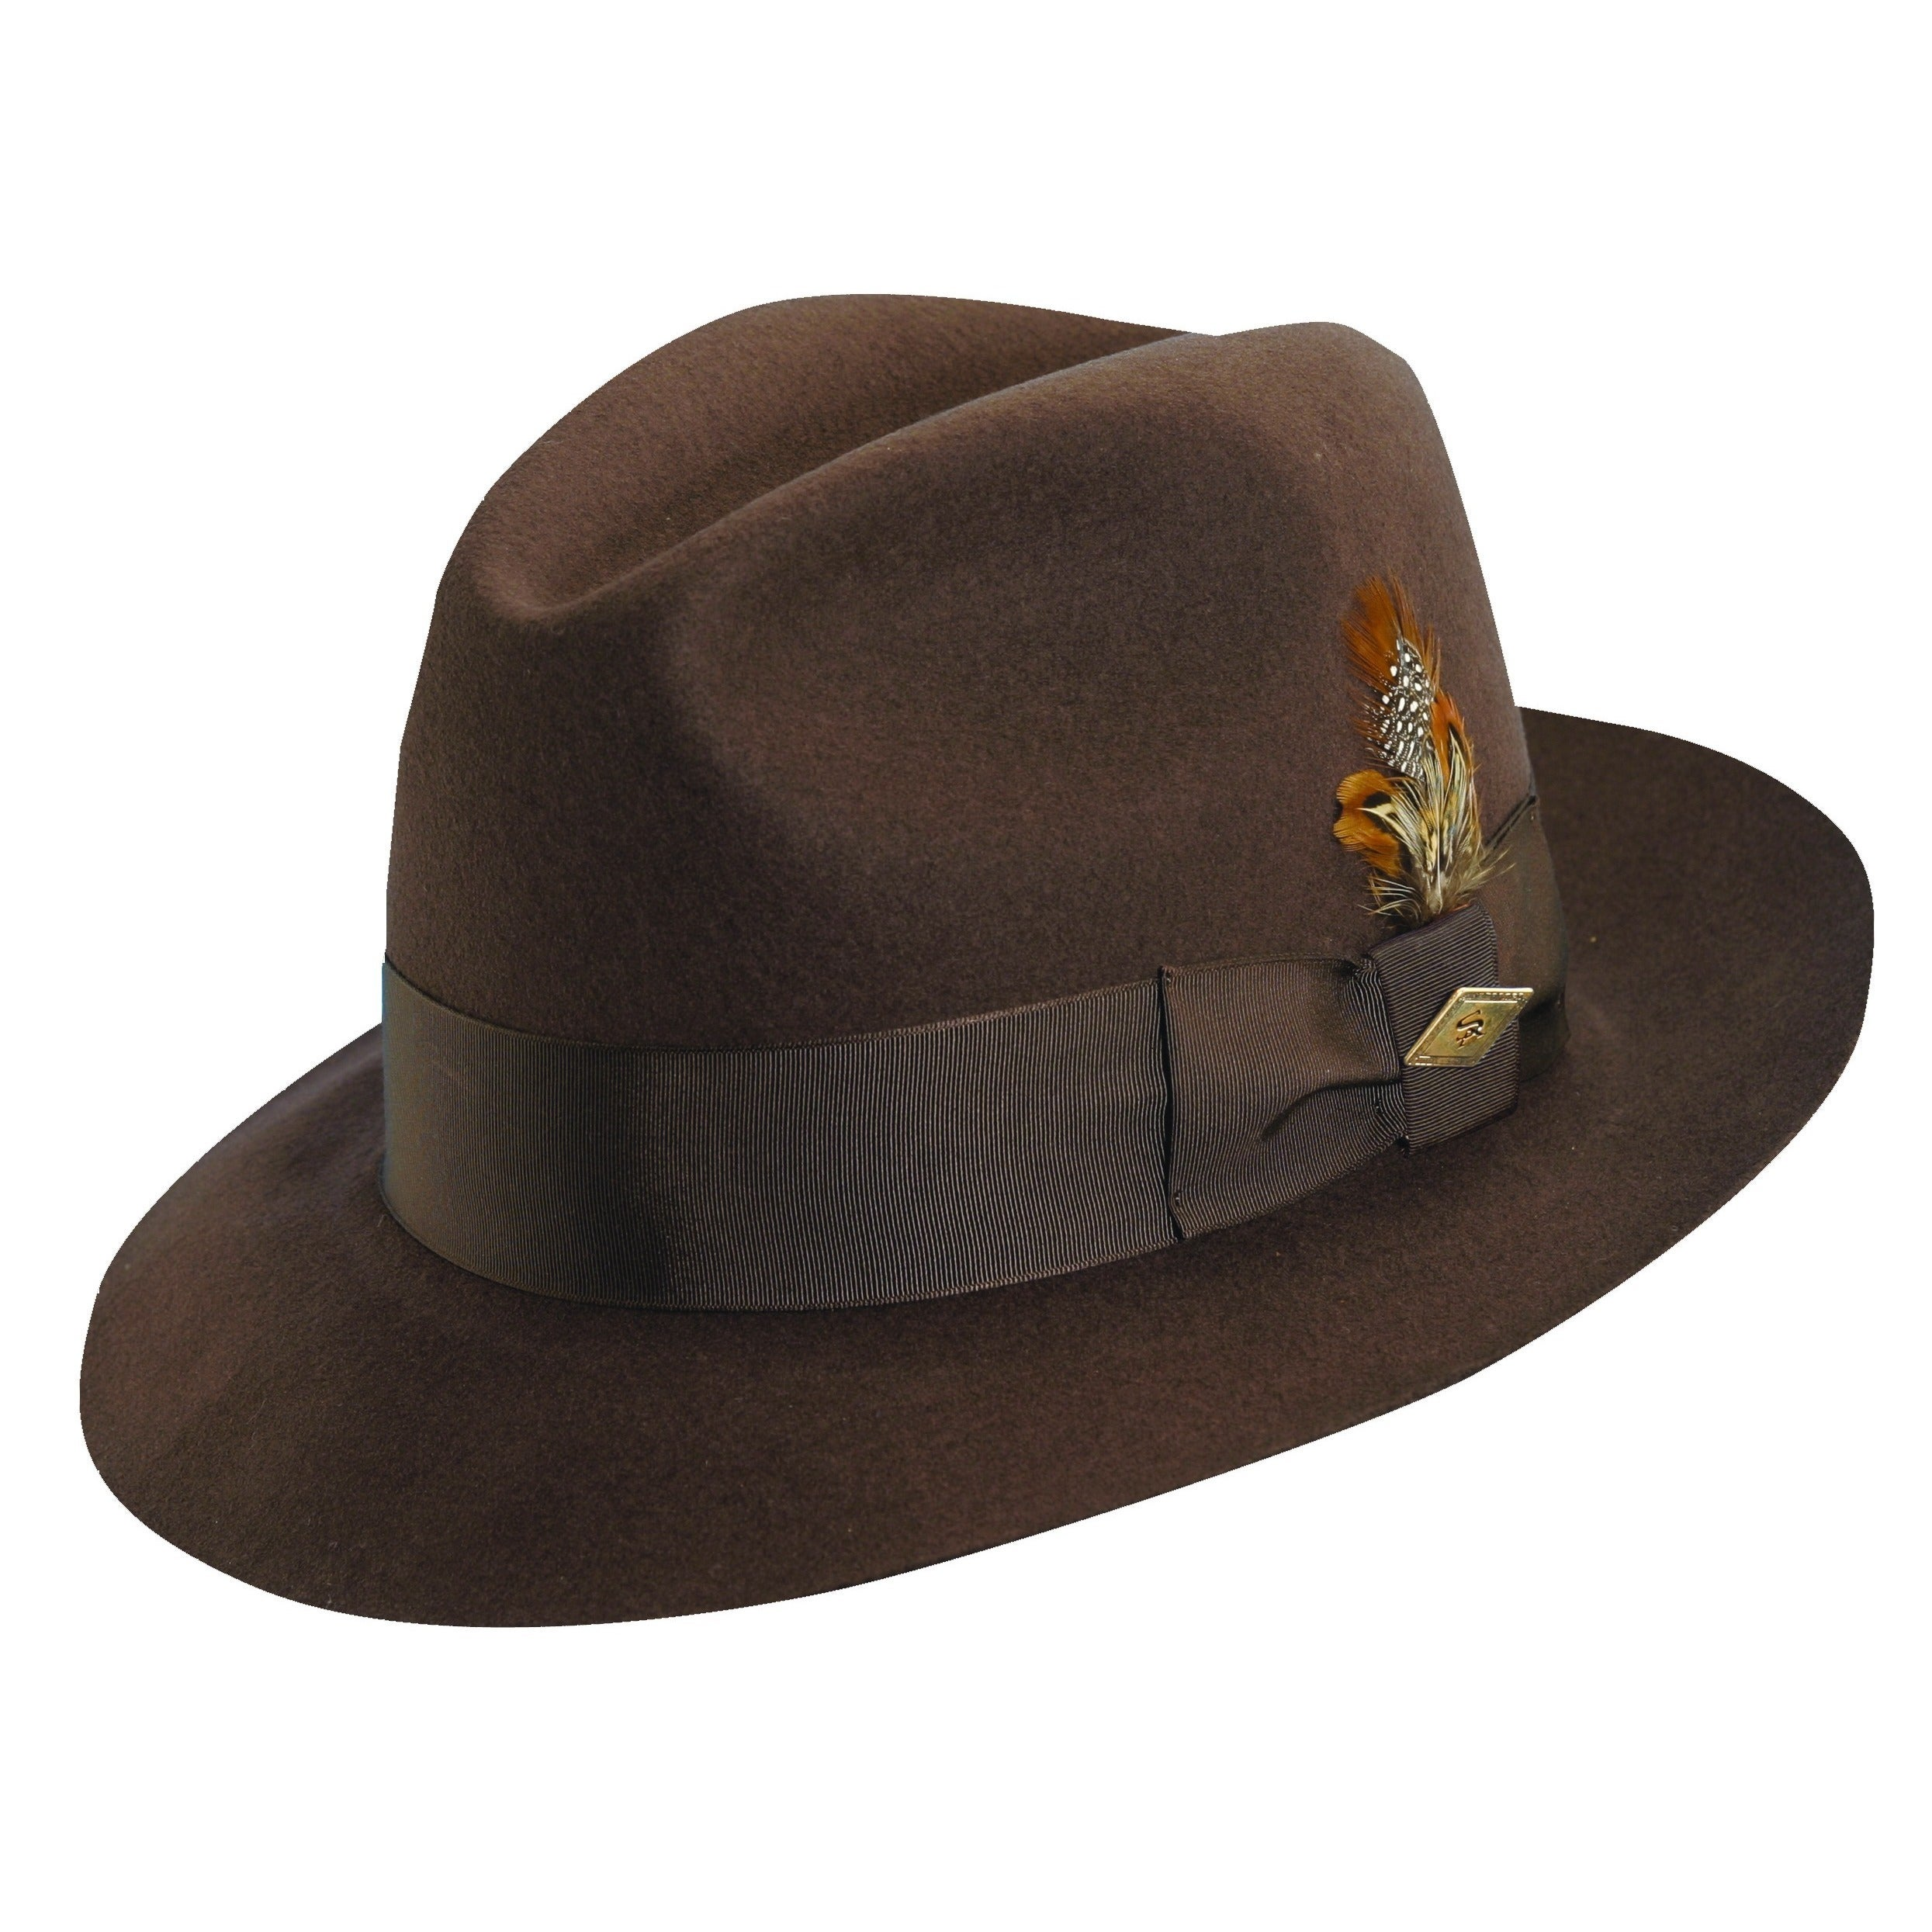 103d4fa3882 Shop Stacy Adams Cannery Row Wool Fedora Hat - Free Shipping Today ...